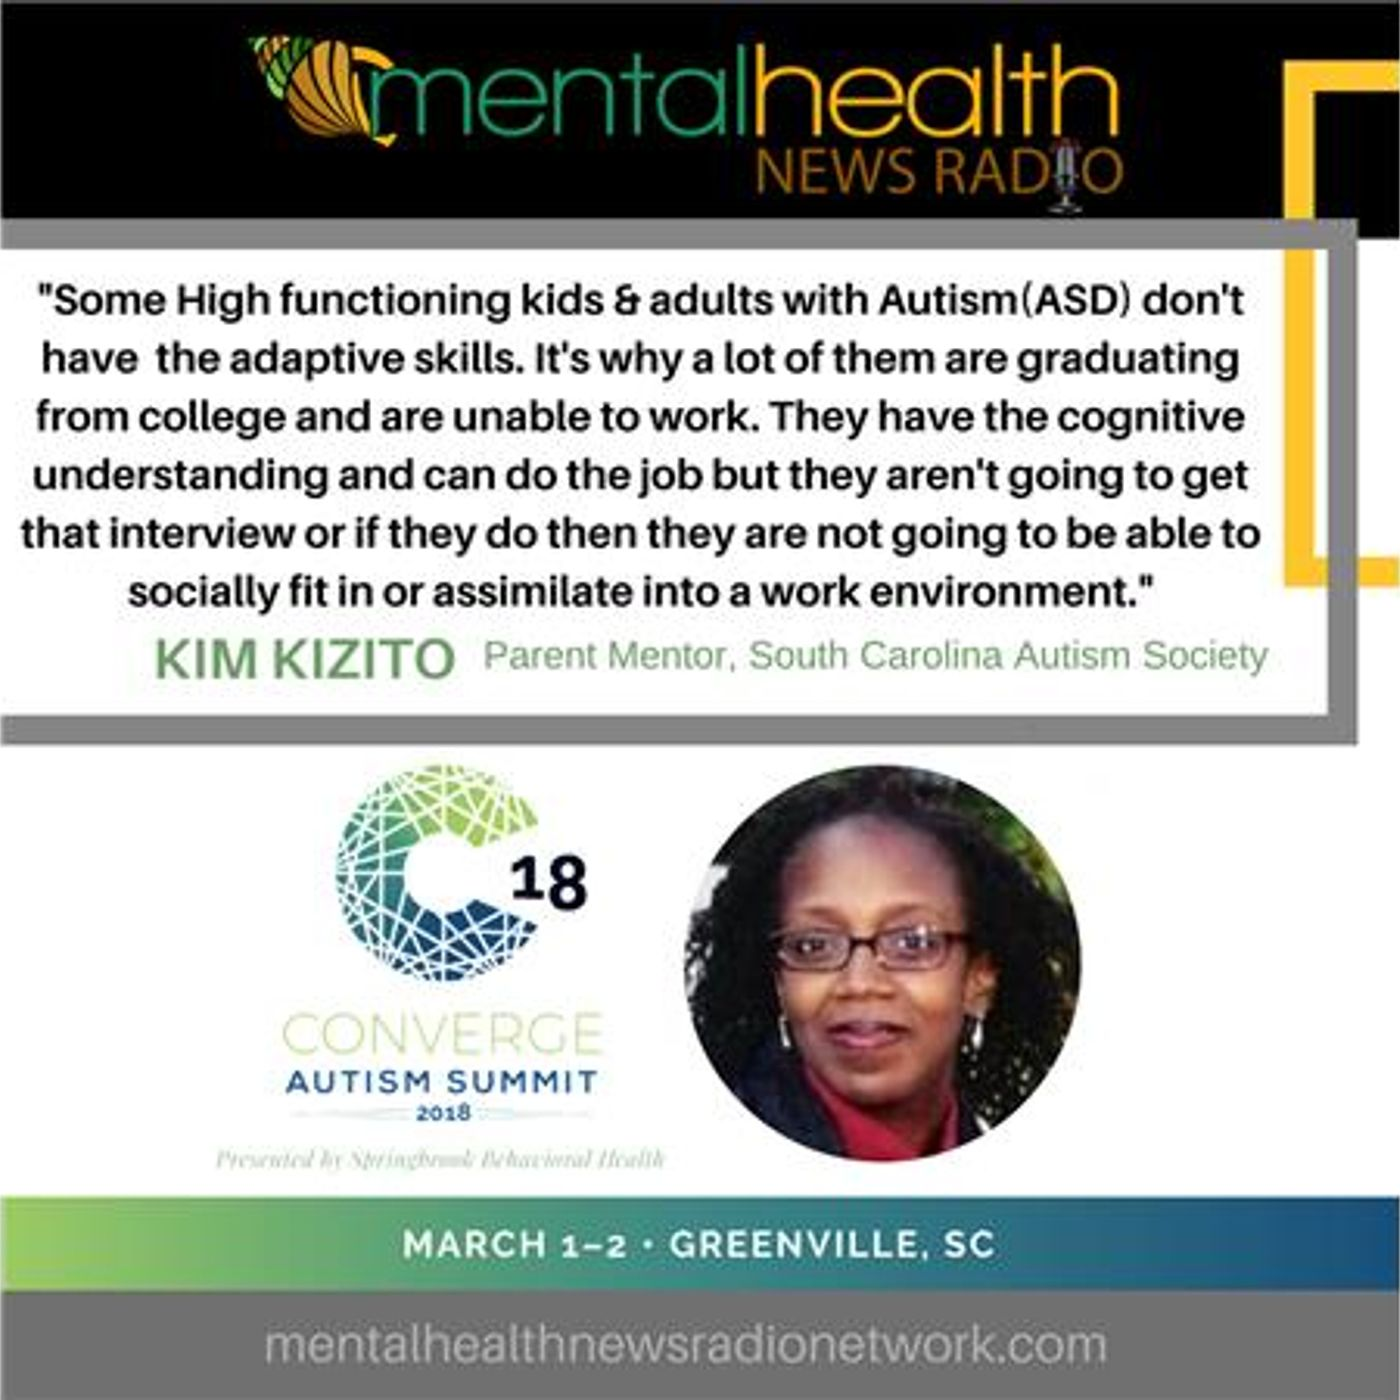 Mental Health News Radio - Autism: A Mother's Journey Advocating with South Carolina Autism Society